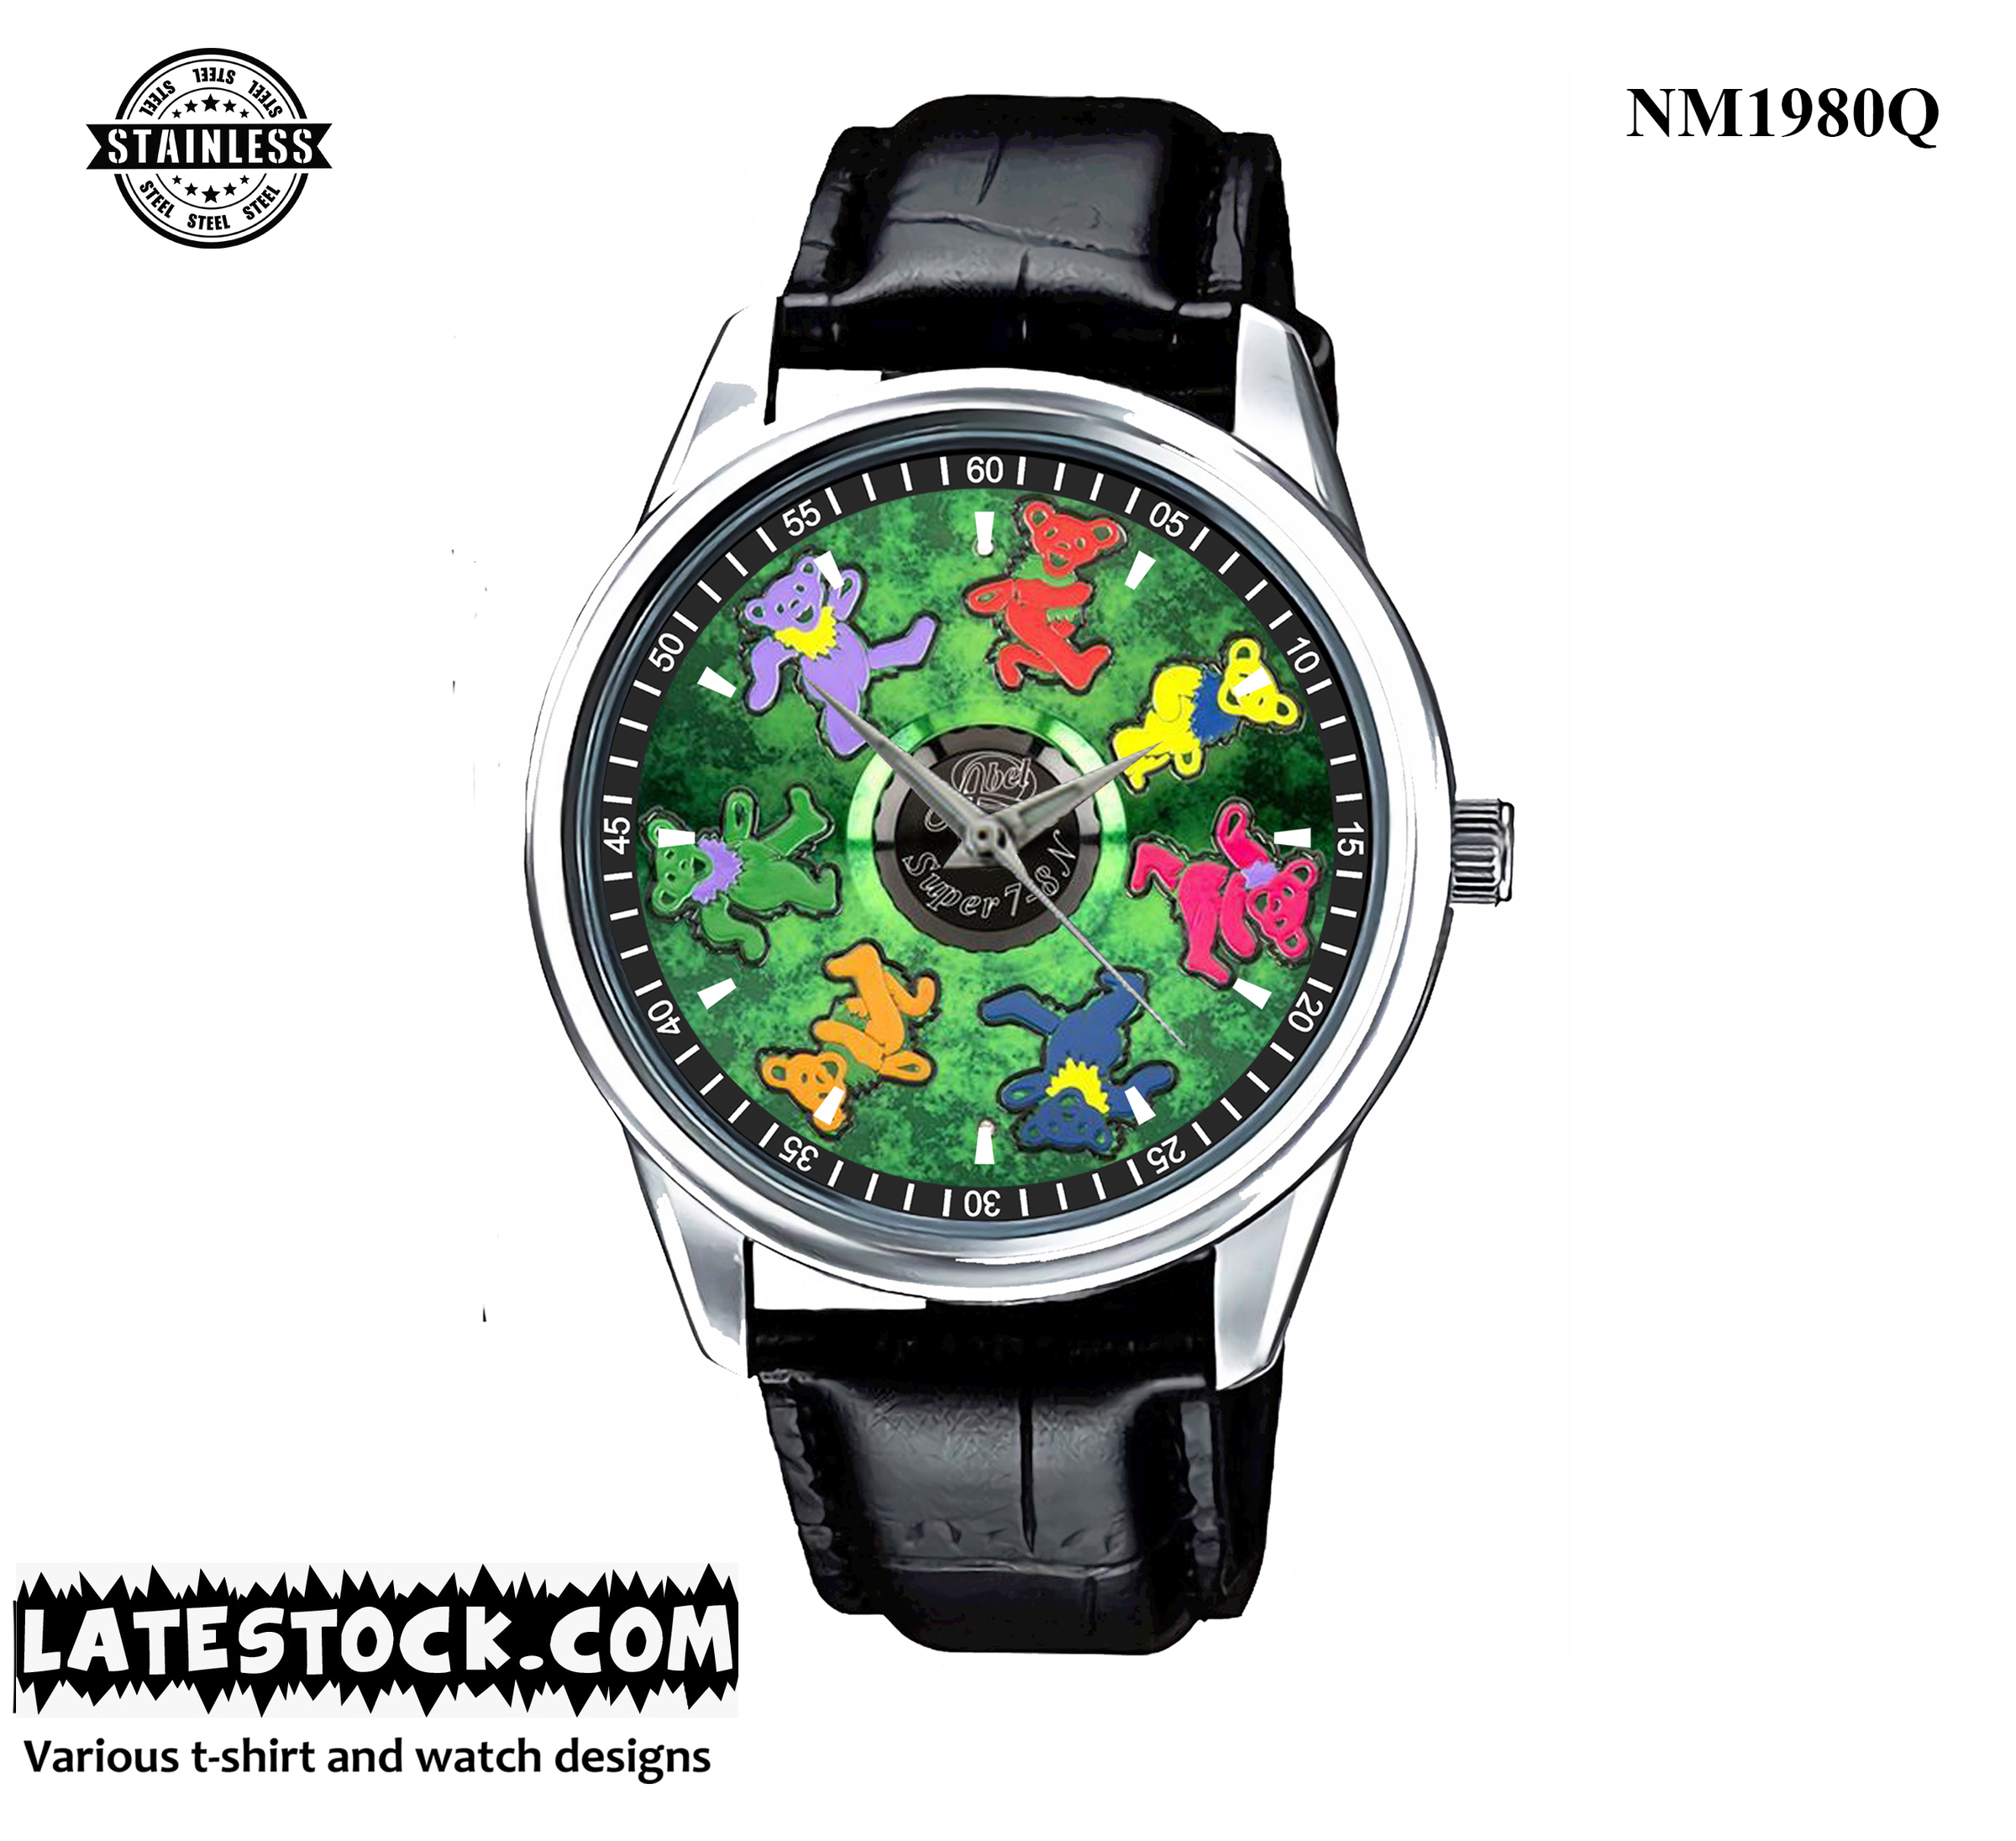 3.2 RARE..!!!final design dancing bear in our collectable Grateful Dead abel sport leather watch silver.jpg